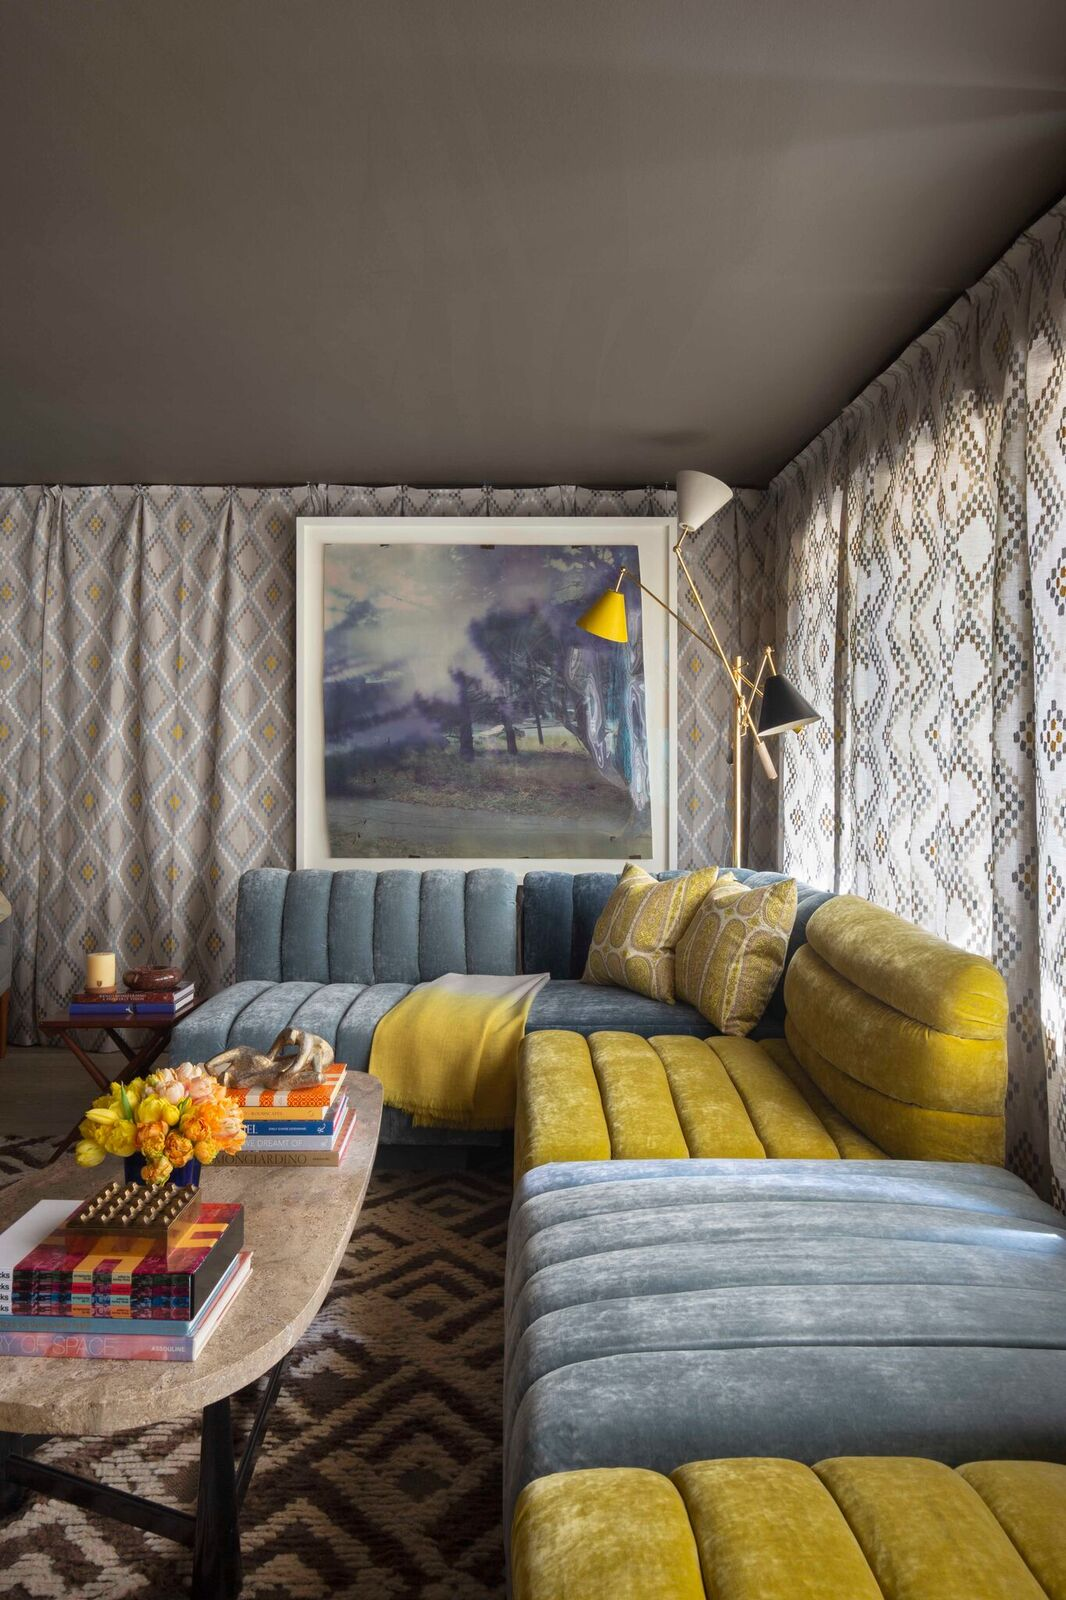 In the Lady Cave, Jon de la Cruz's childhood memories of creating pillow forts were the inspiration. The space is completely draped with embroidered linen fabric, giving the impression of an exotic tent. A custom channel-tufted sectional invites ladies--or anyone else--to sink in and unwind.